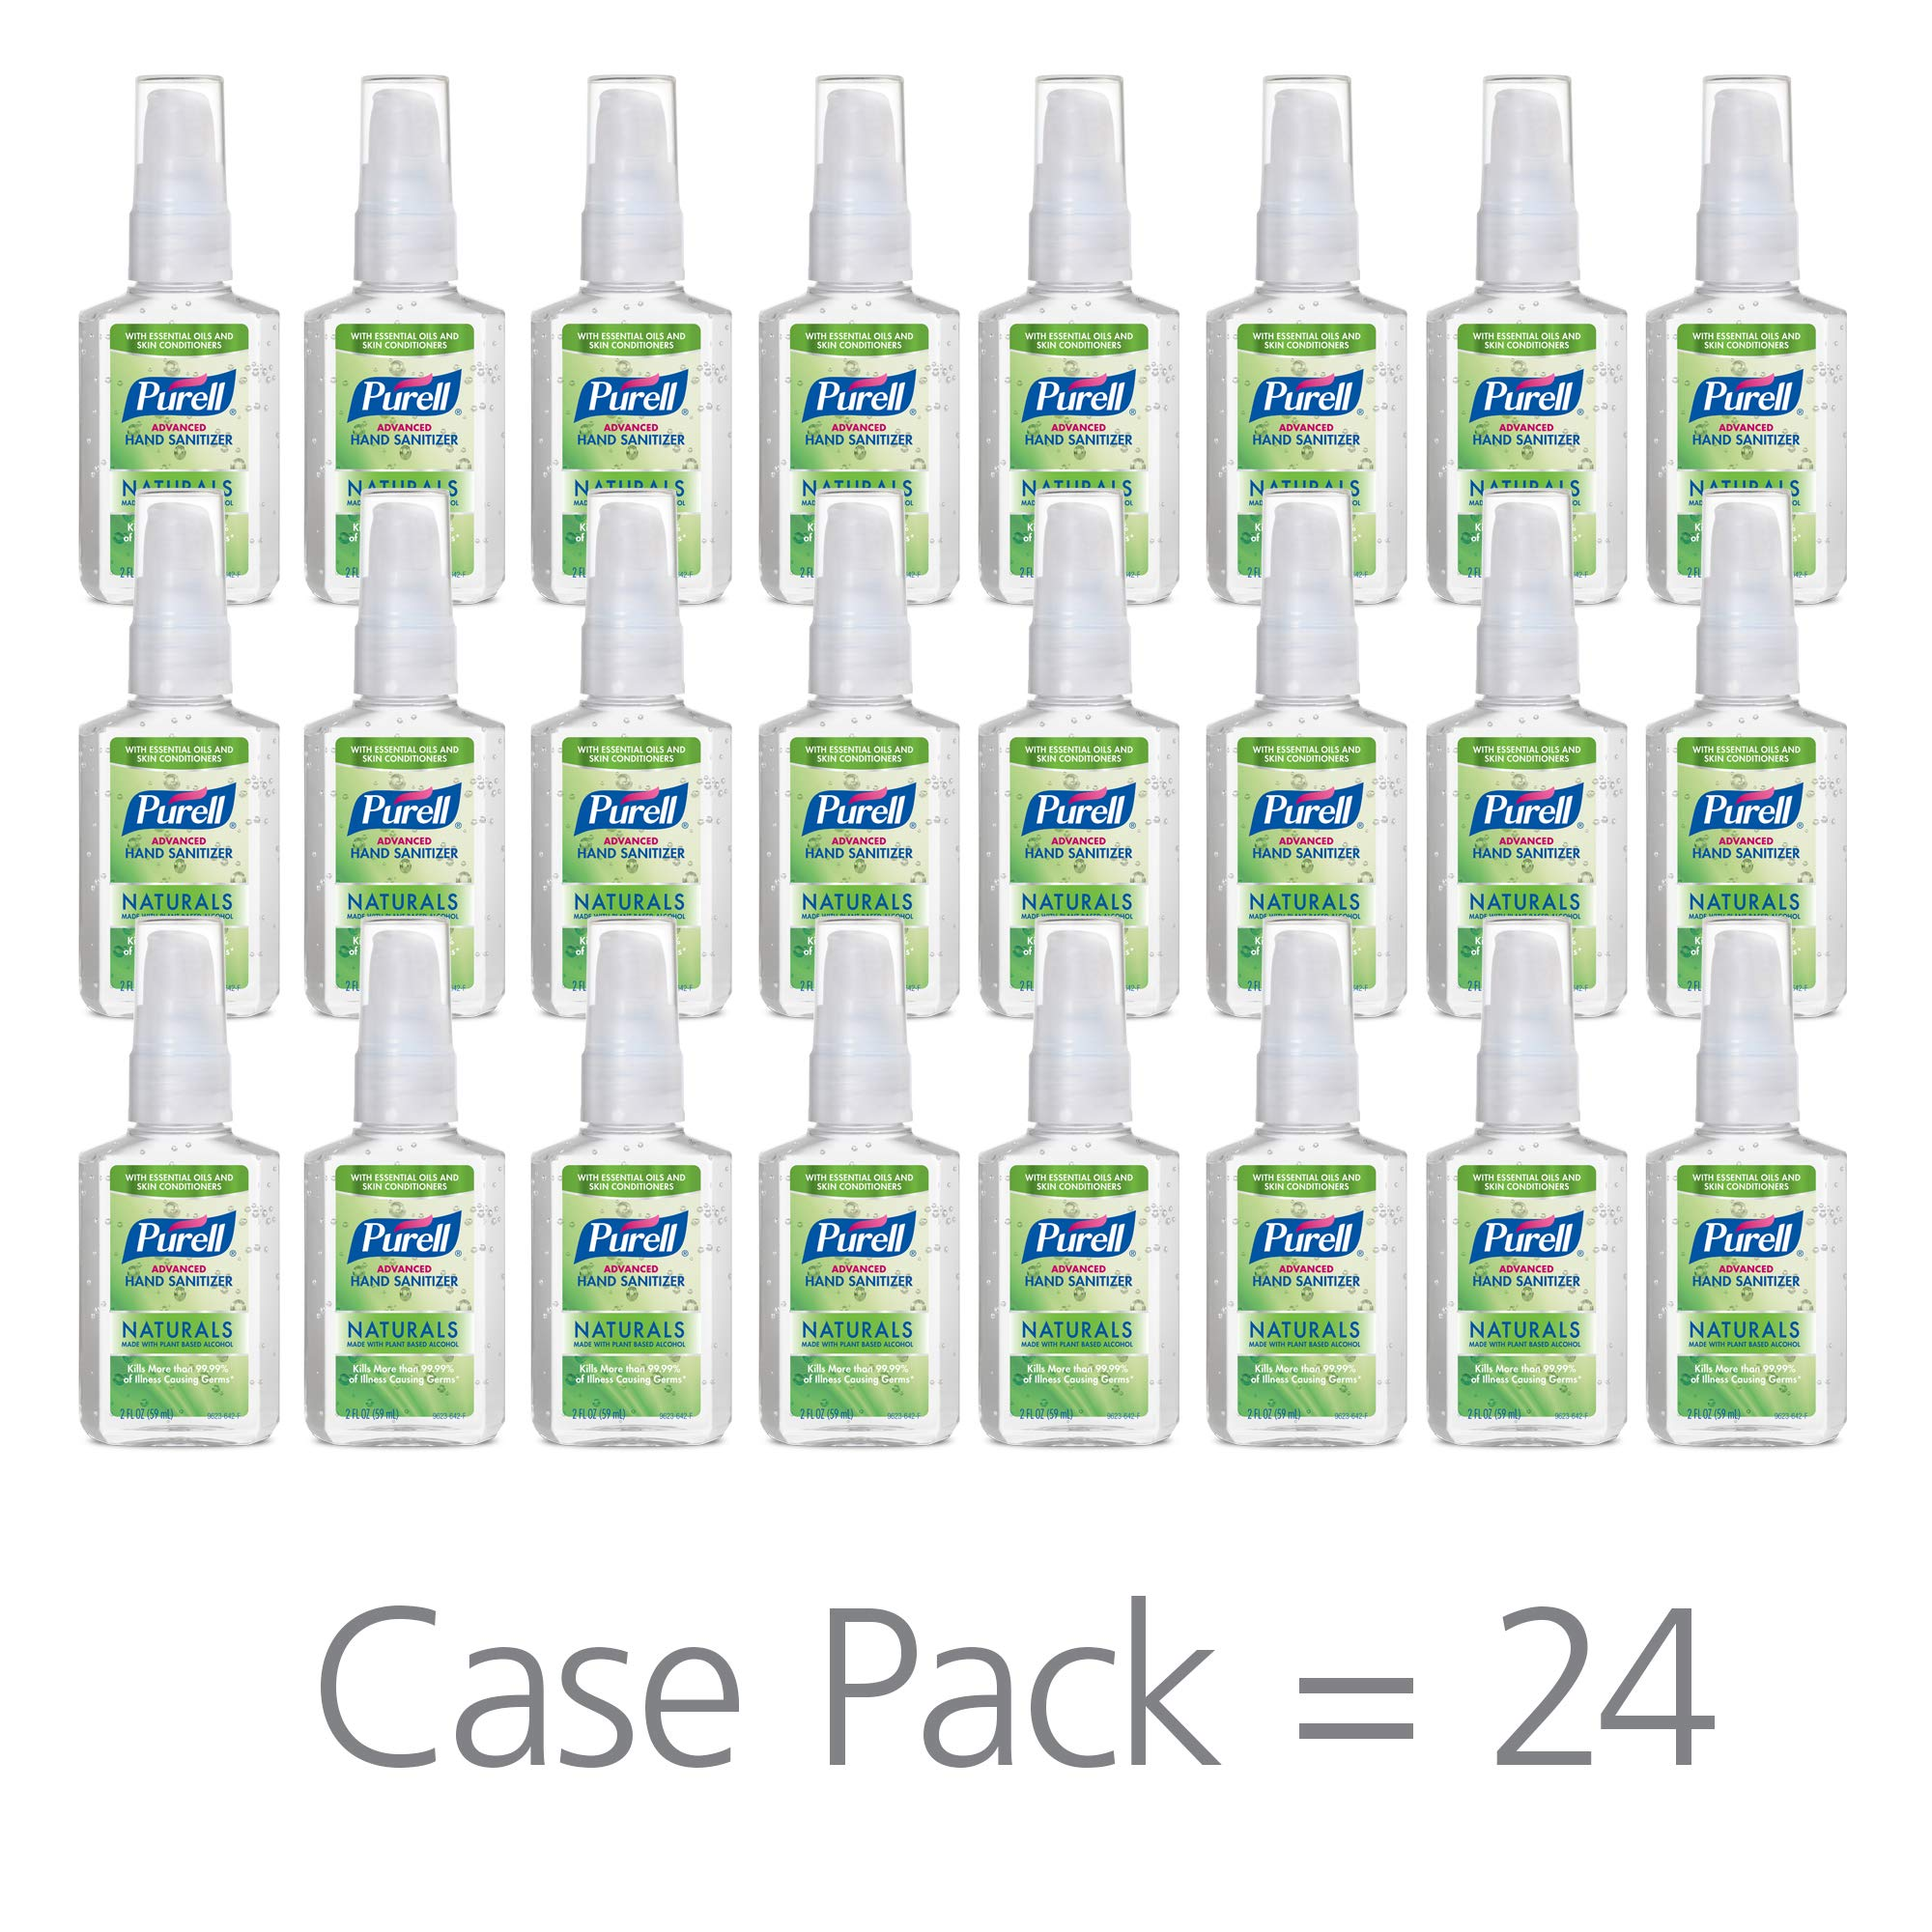 PURELL Advanced Hand Sanitizer Naturals with Plant Based Alcohol, Citrus scent, 2 fl oz Pump Bottle (Pack of 24) - 9623-24 by Purell